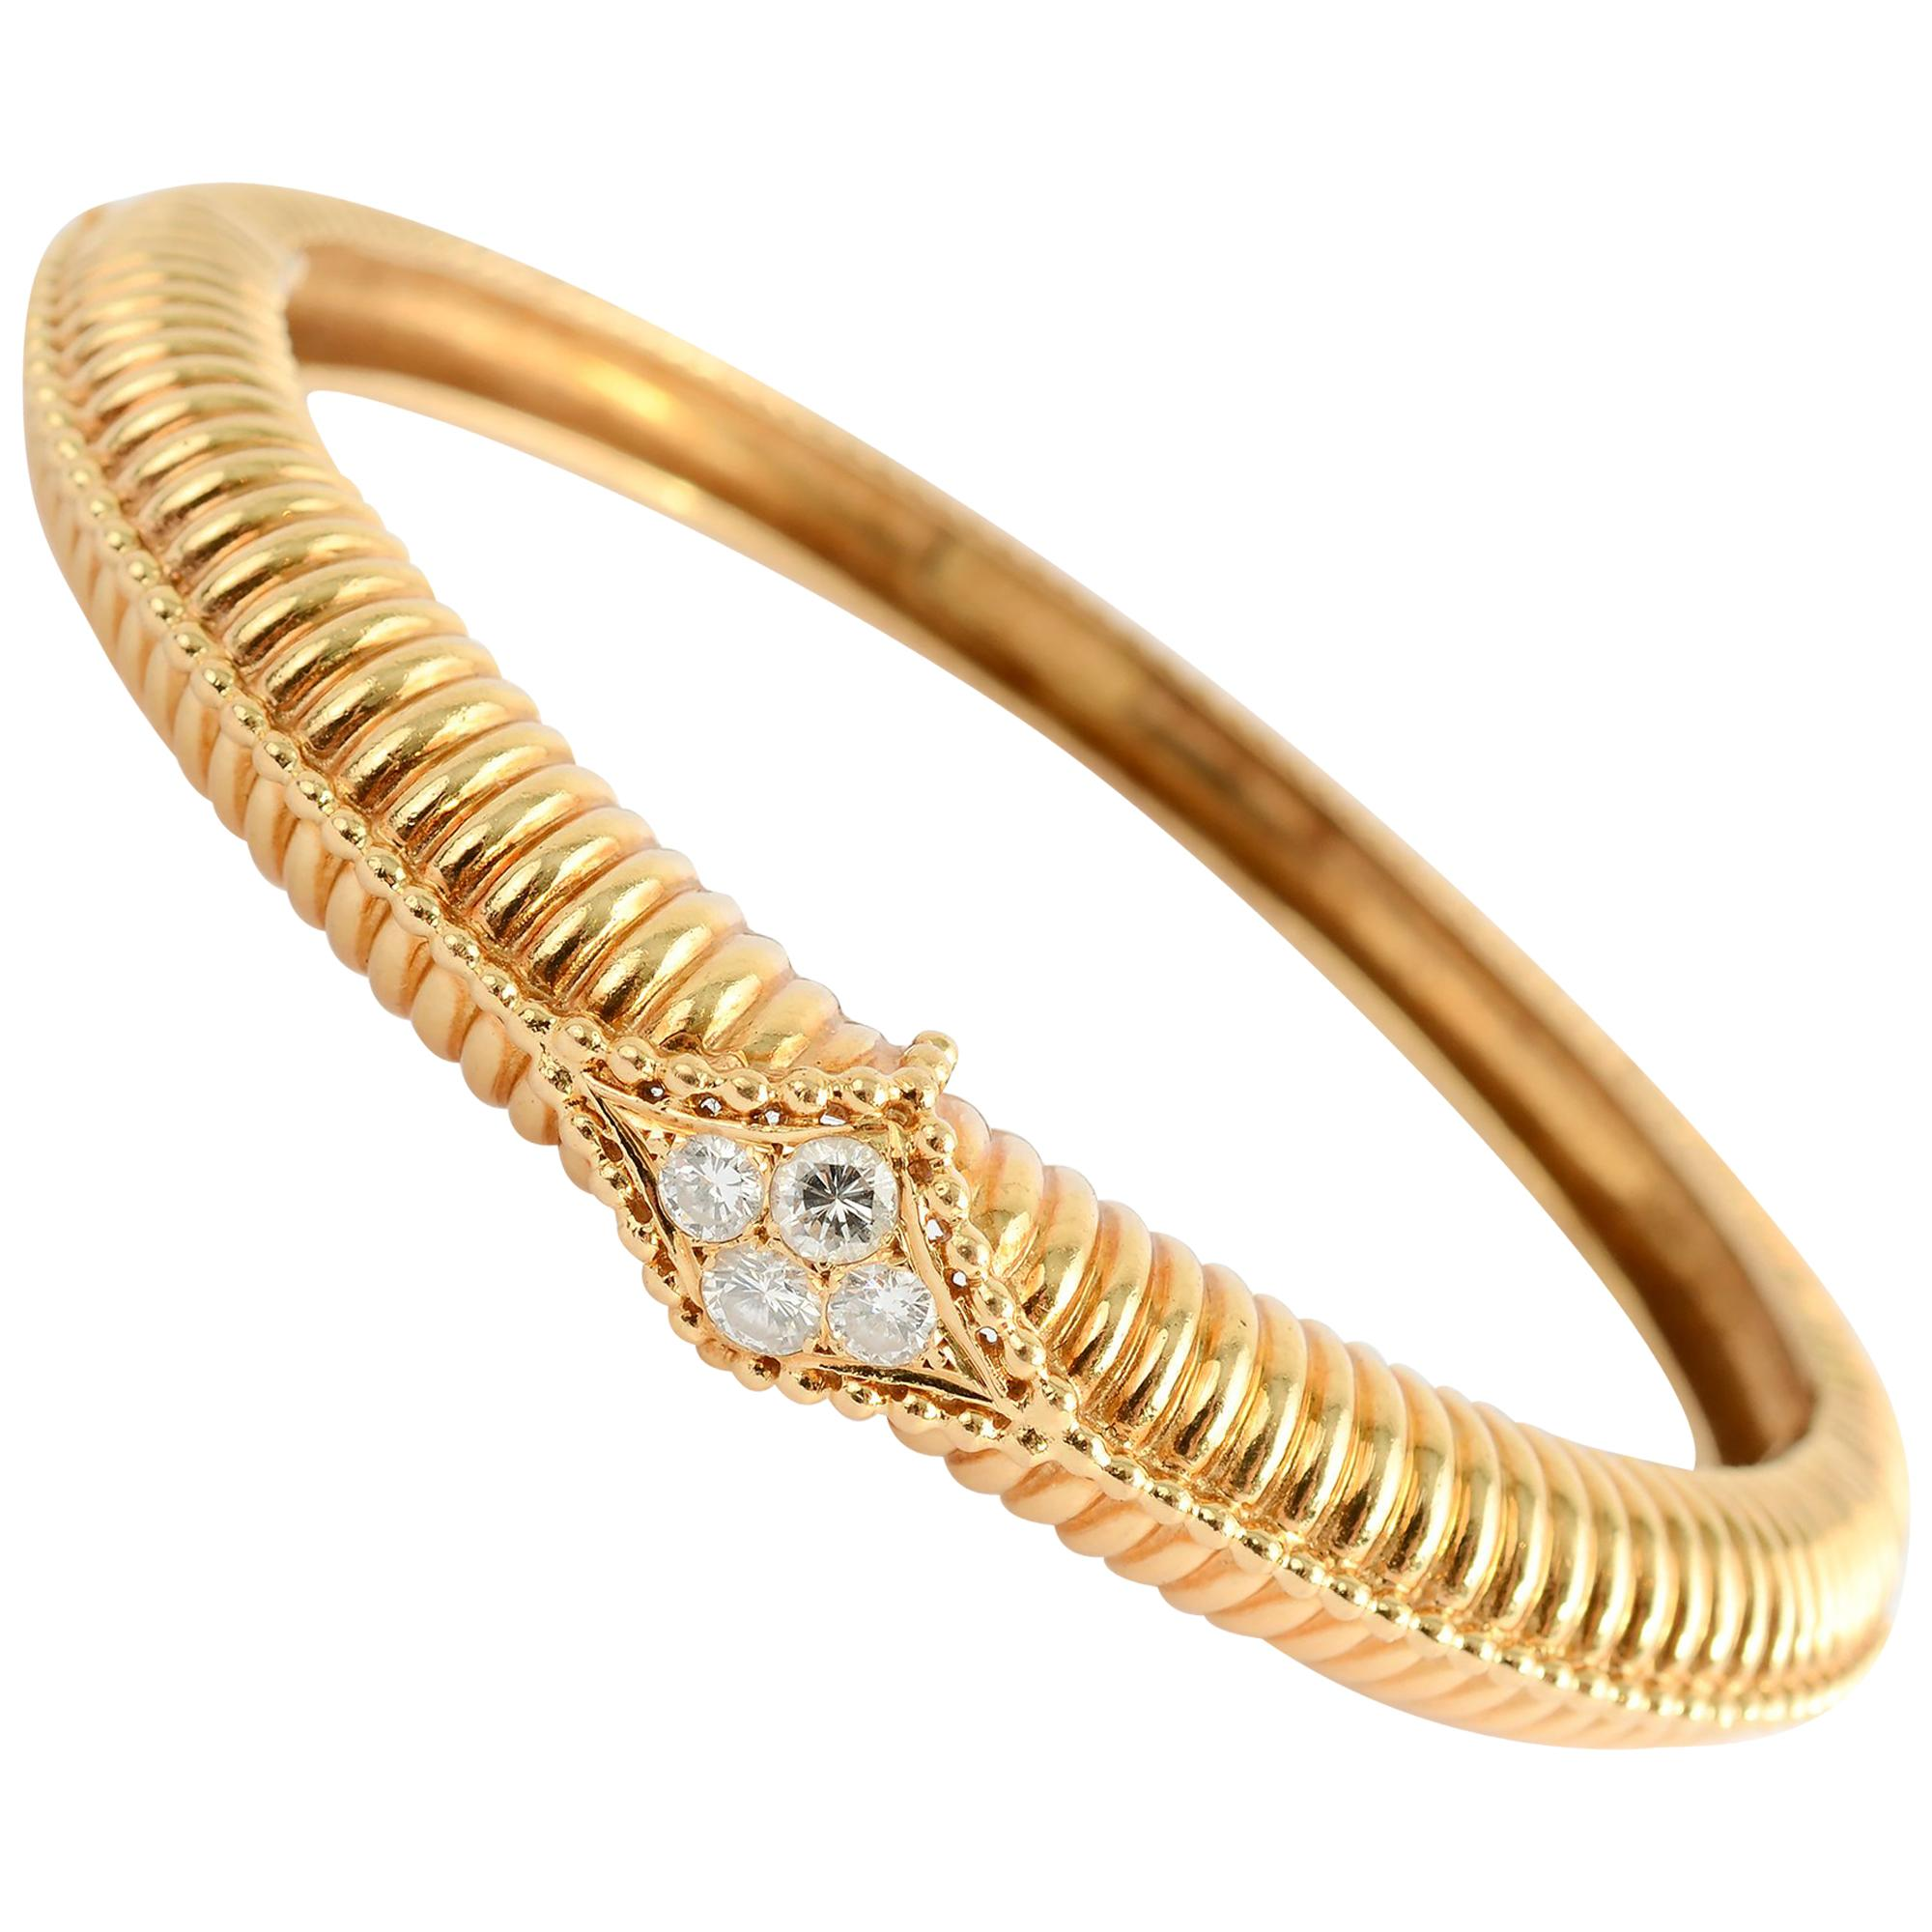 Van Cleef & Arpels Gold Diamond Bangle Bracelet